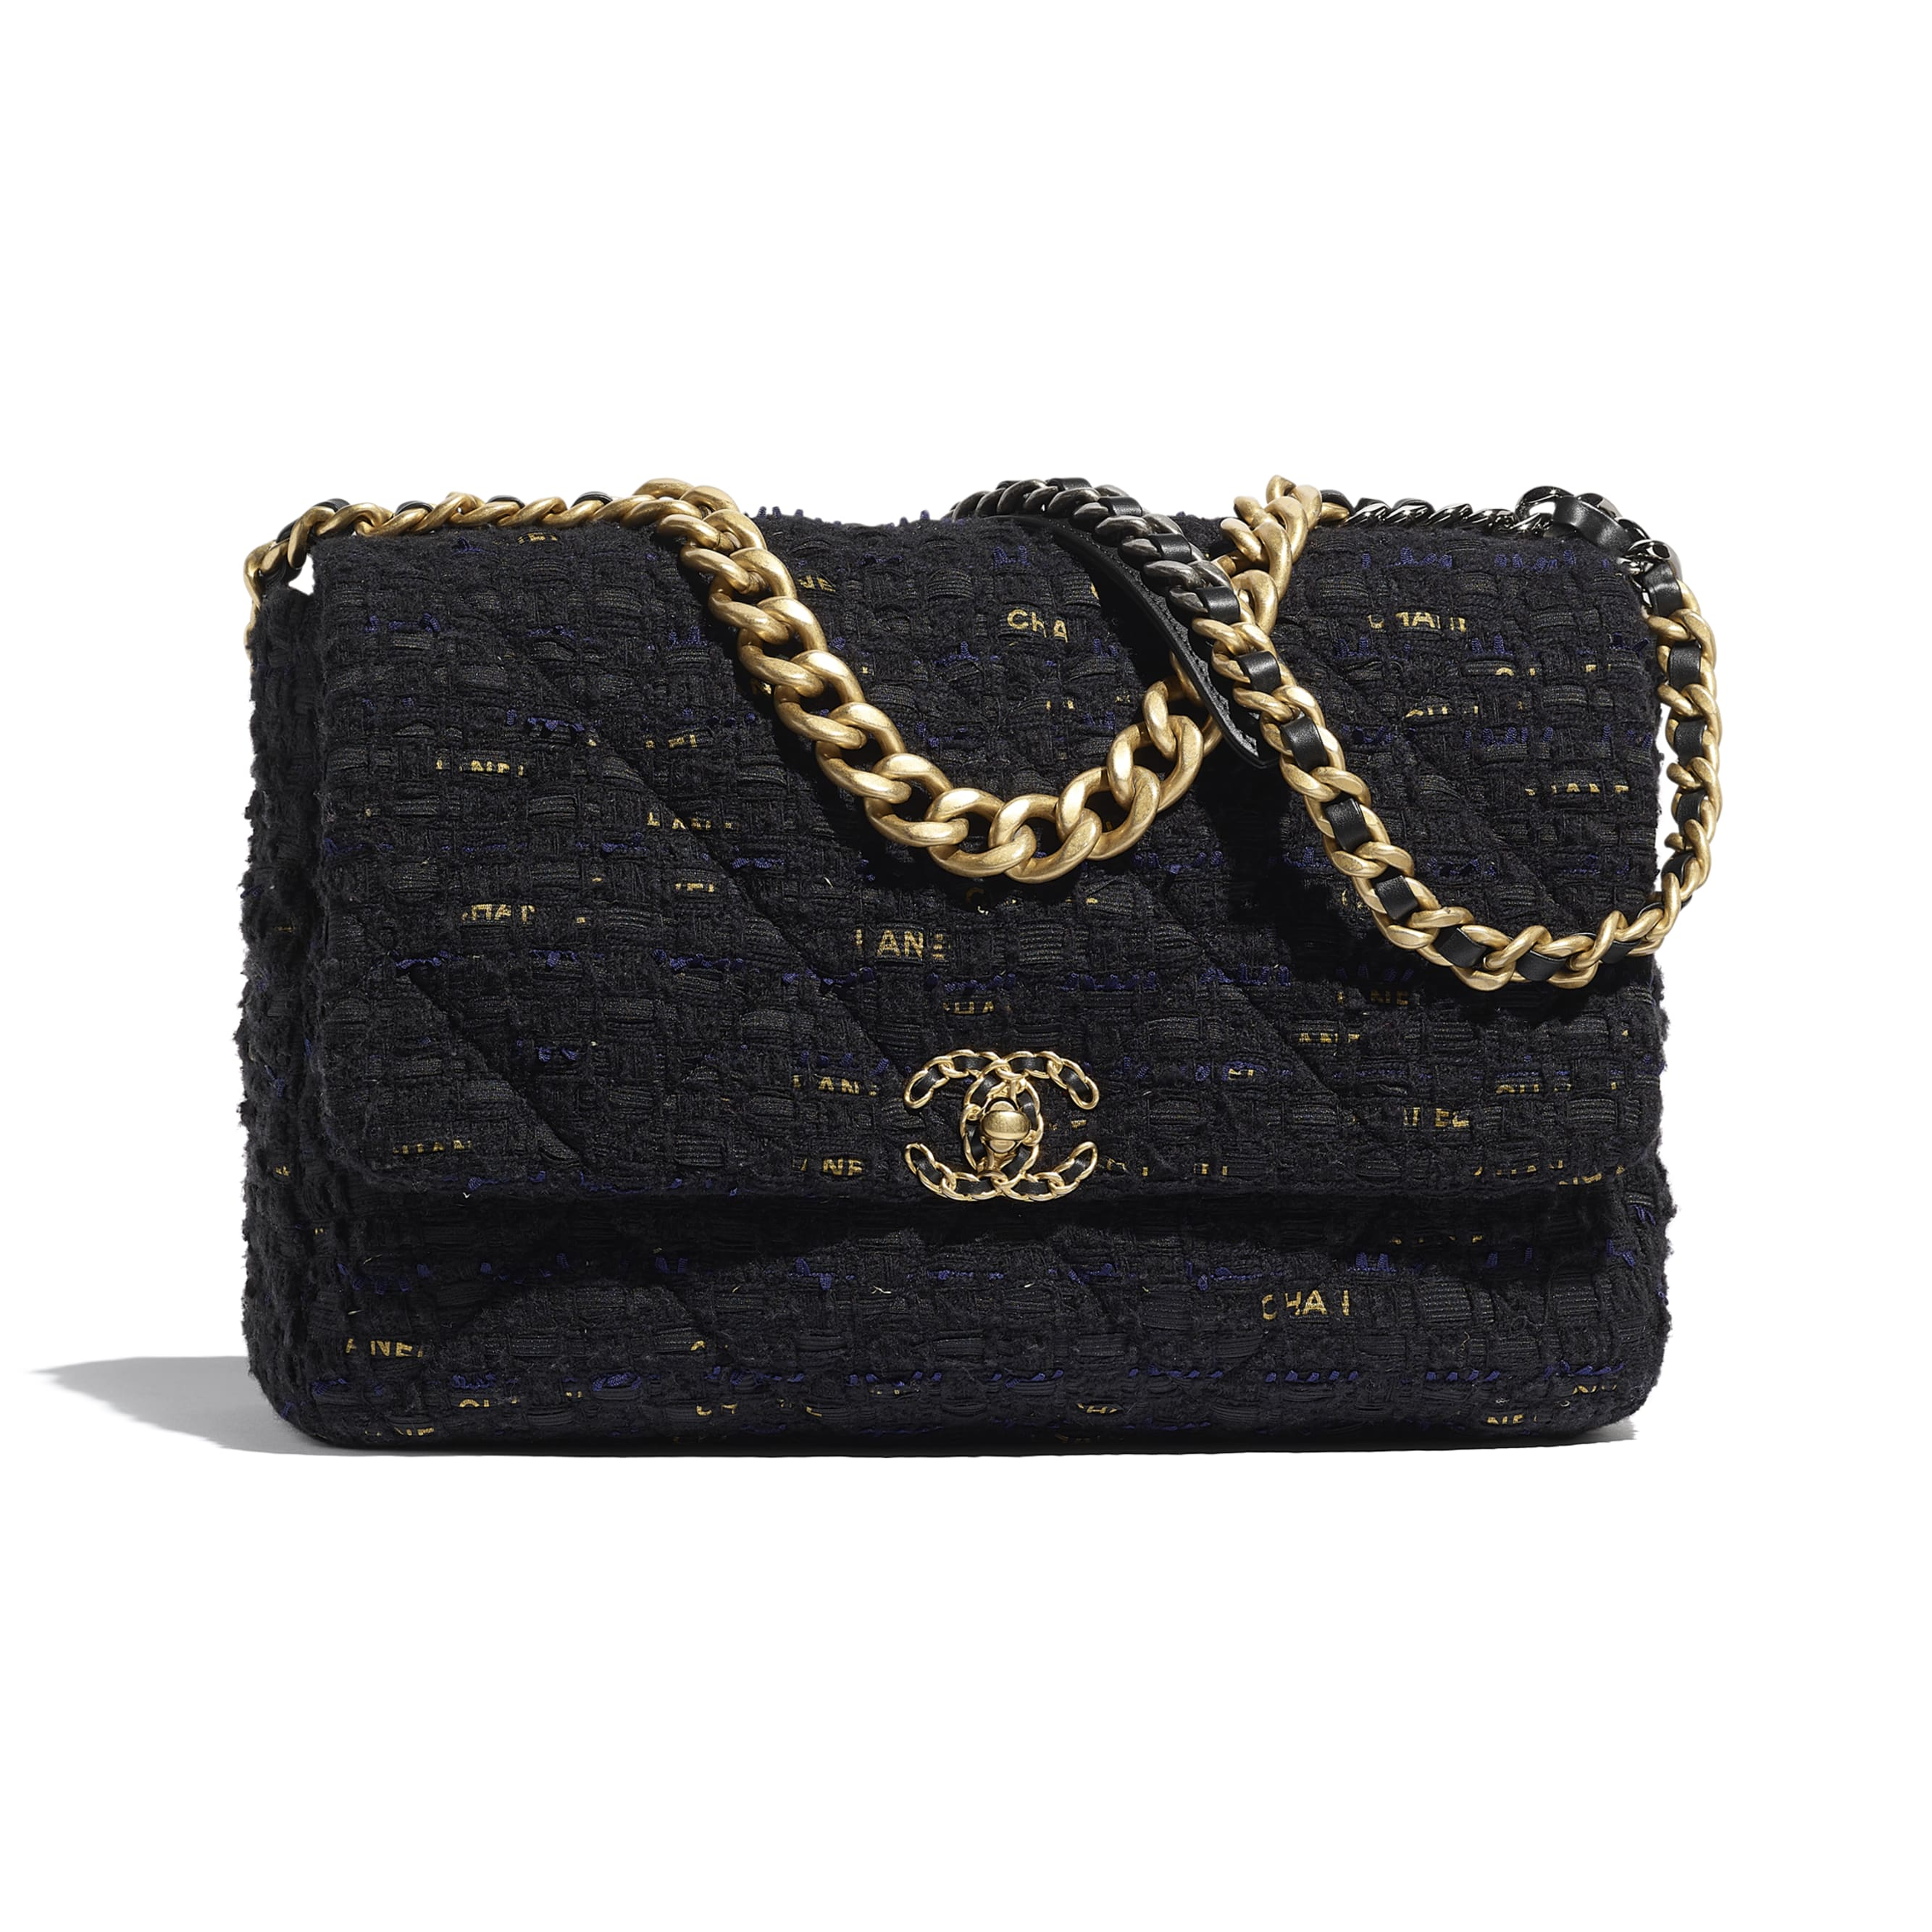 CHANEL 19 Maxi Flap Bag - Black, Navy Blue & Gold - Tweed, Gold-Tone, Silver-Tone & Ruthenium-Finish Metal - CHANEL - Default view - see standard sized version